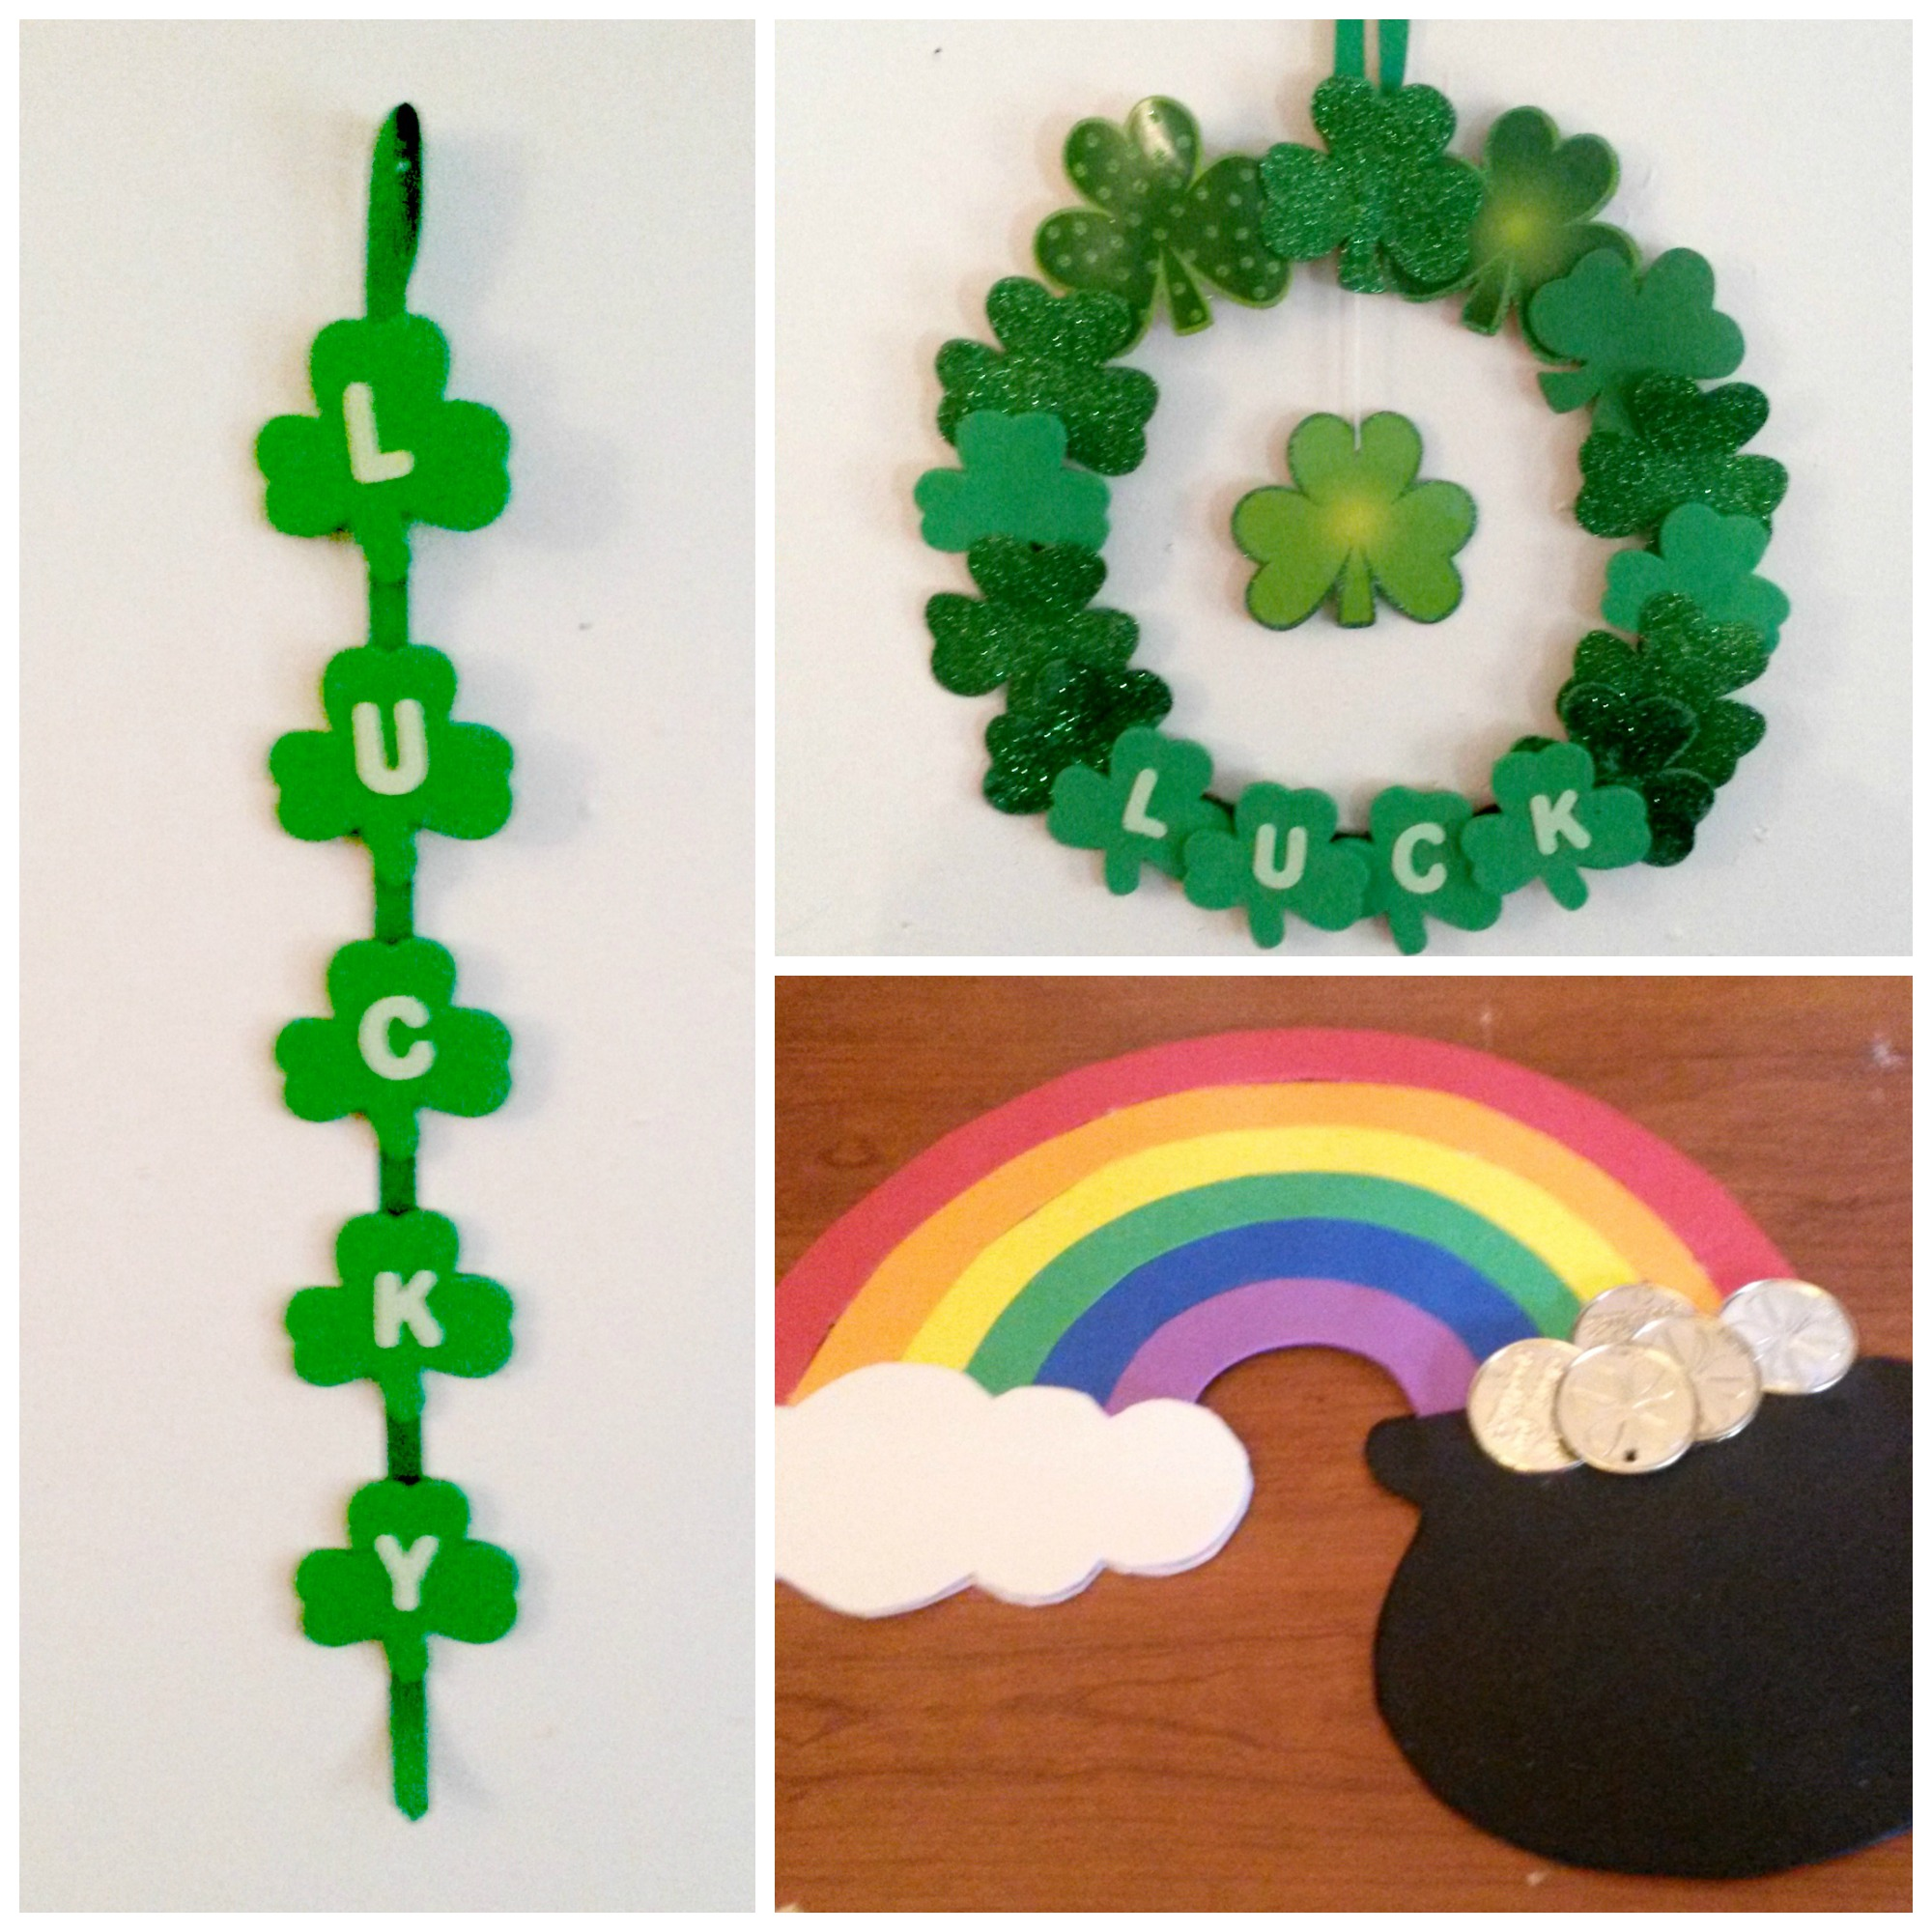 St patrick 39 s day decorations fun family crafts for Decoration saint patrick